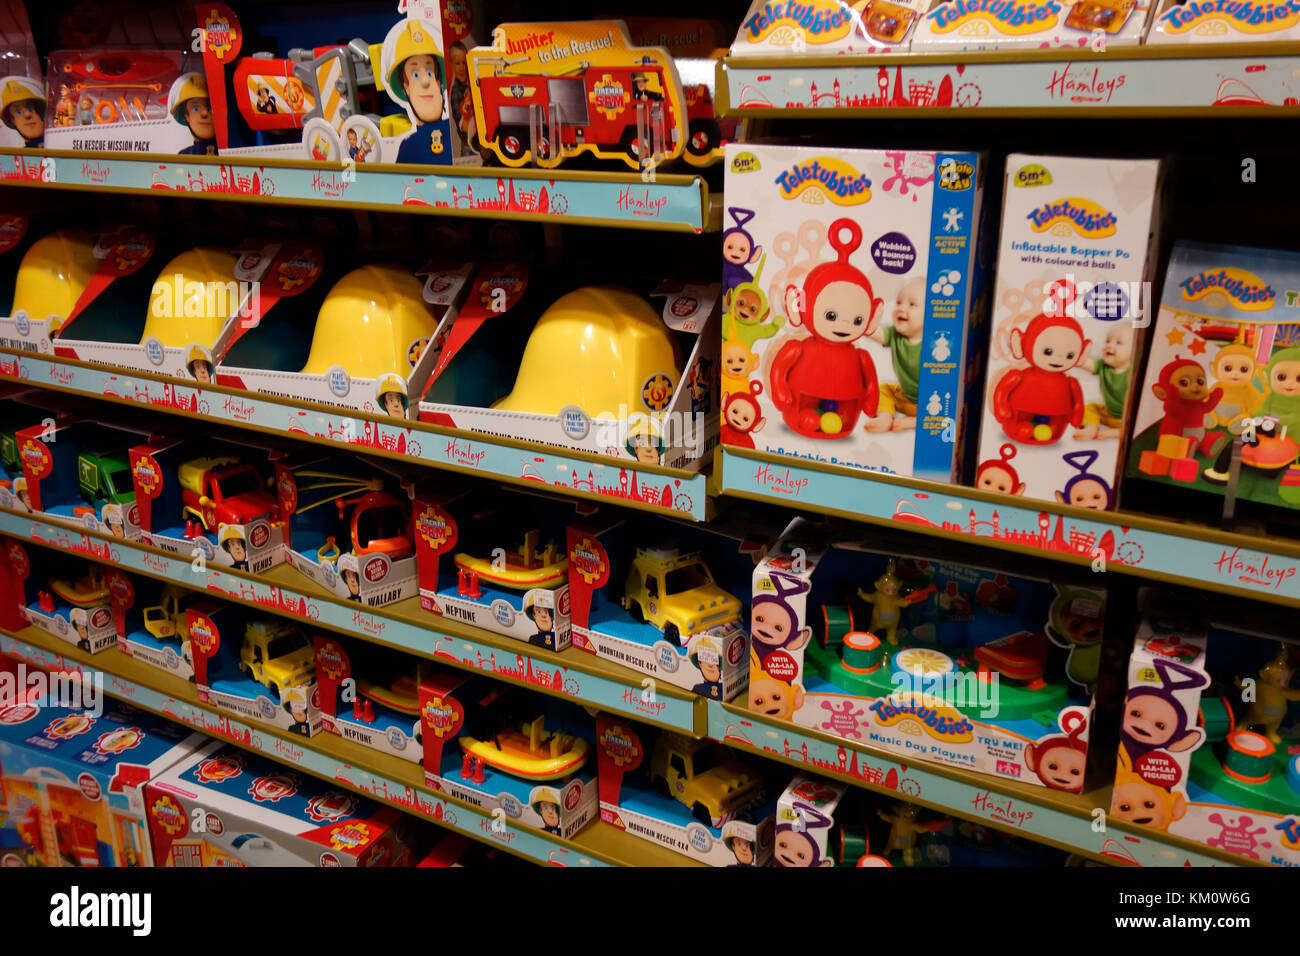 Toys From Hamleys : Hamleys toys stock photos images alamy